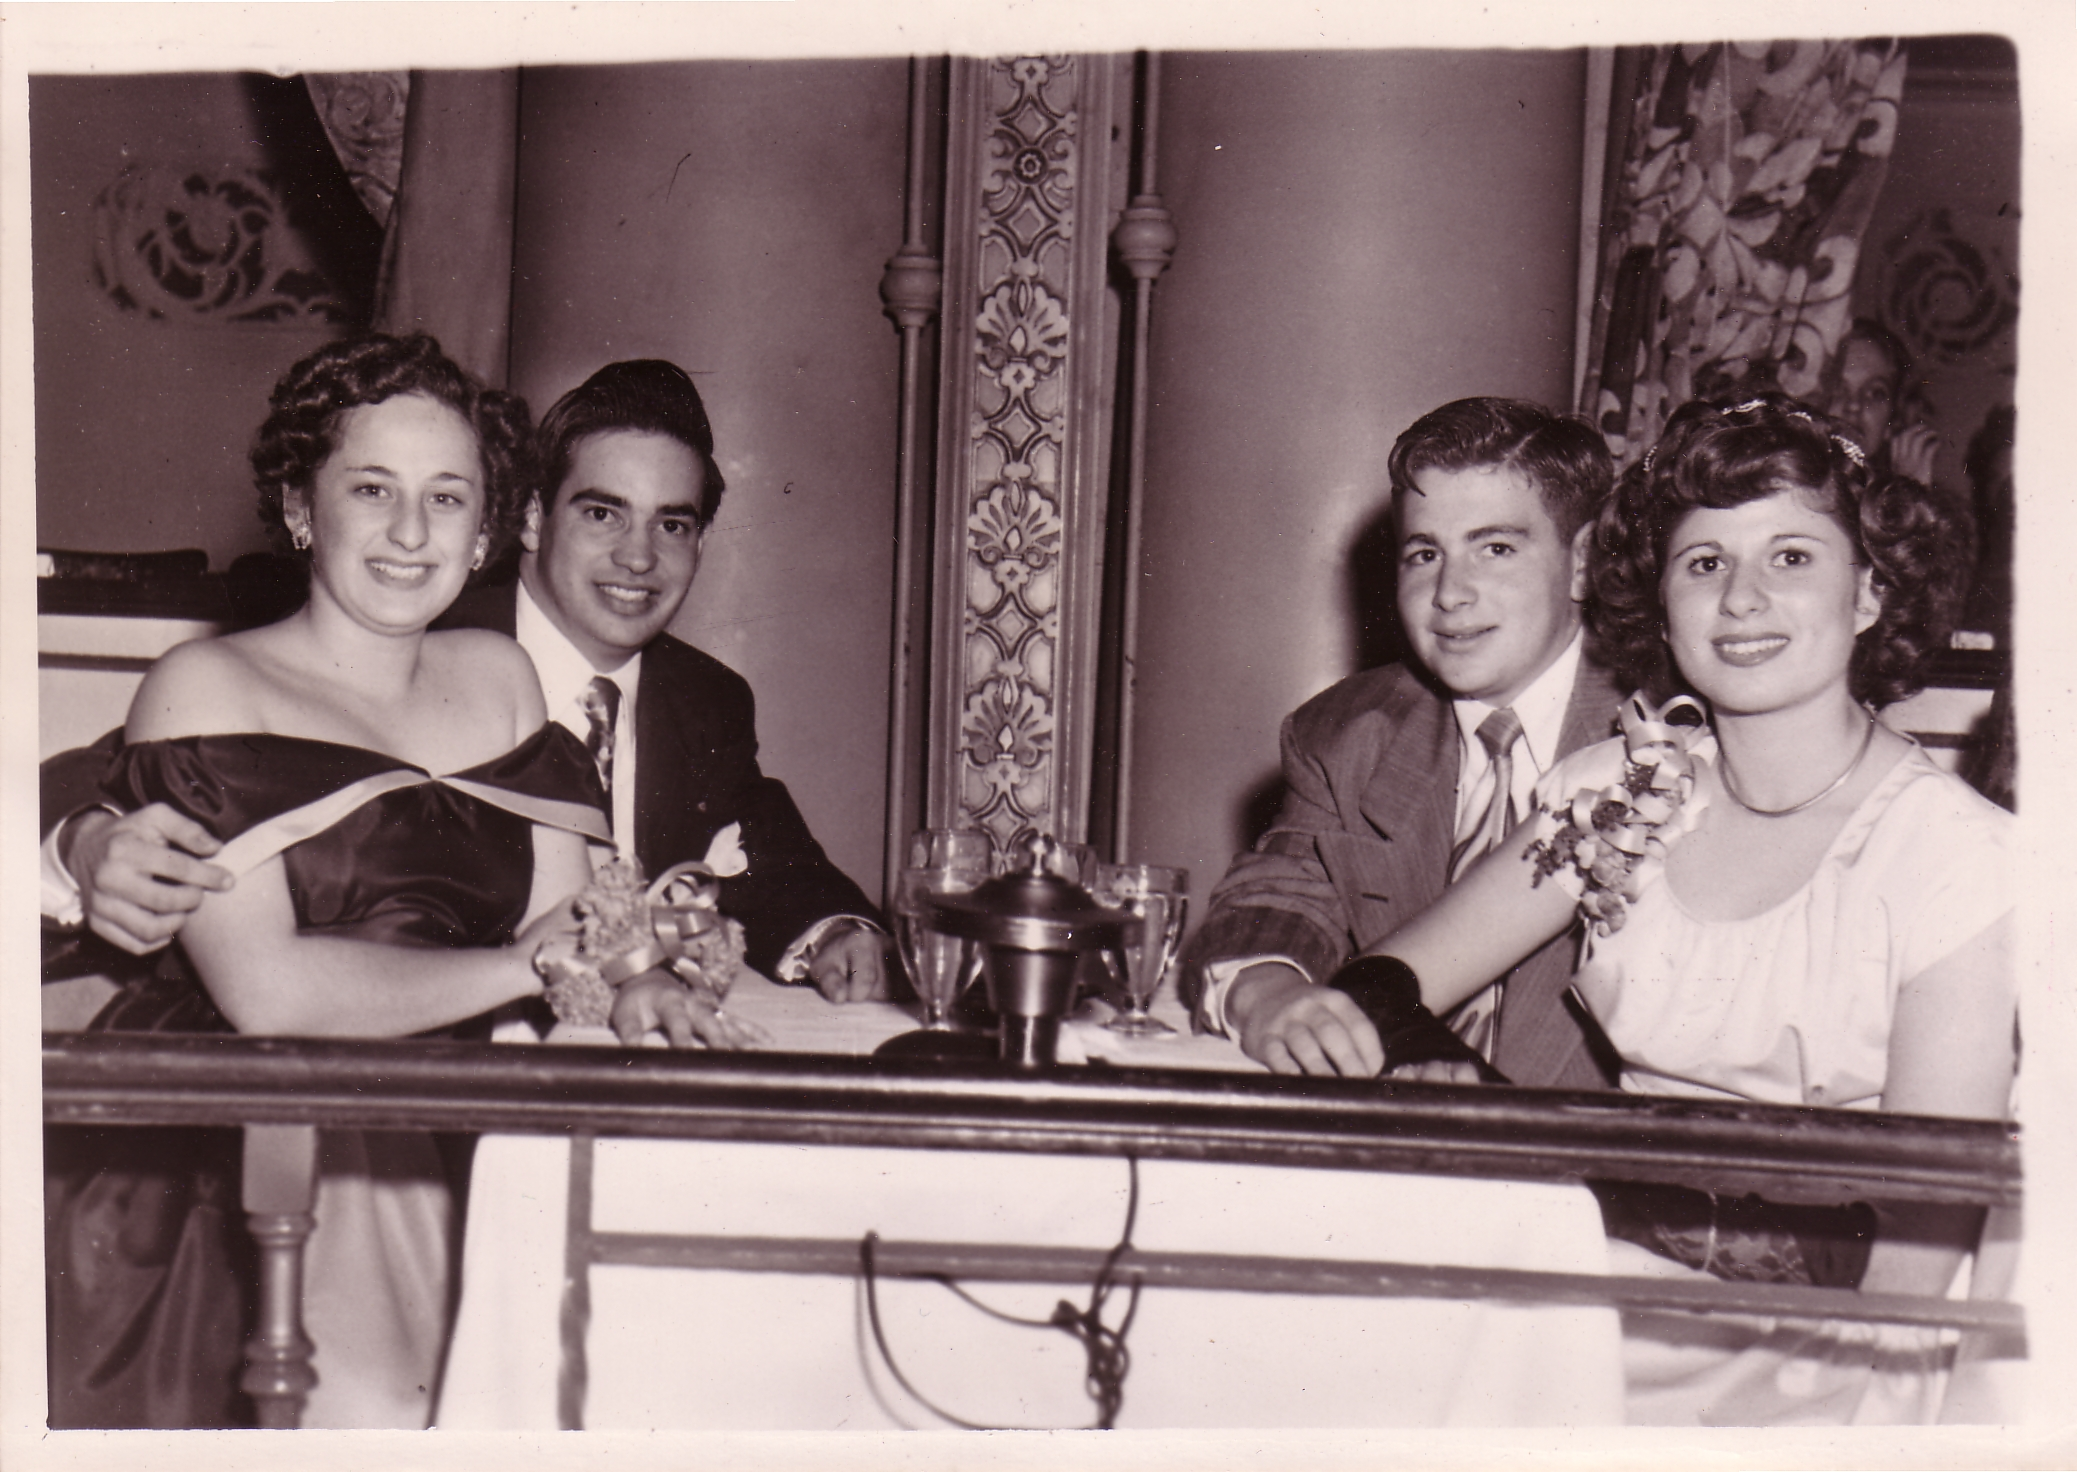 Mom and Dad dating with Friends at Biltmore Hotel